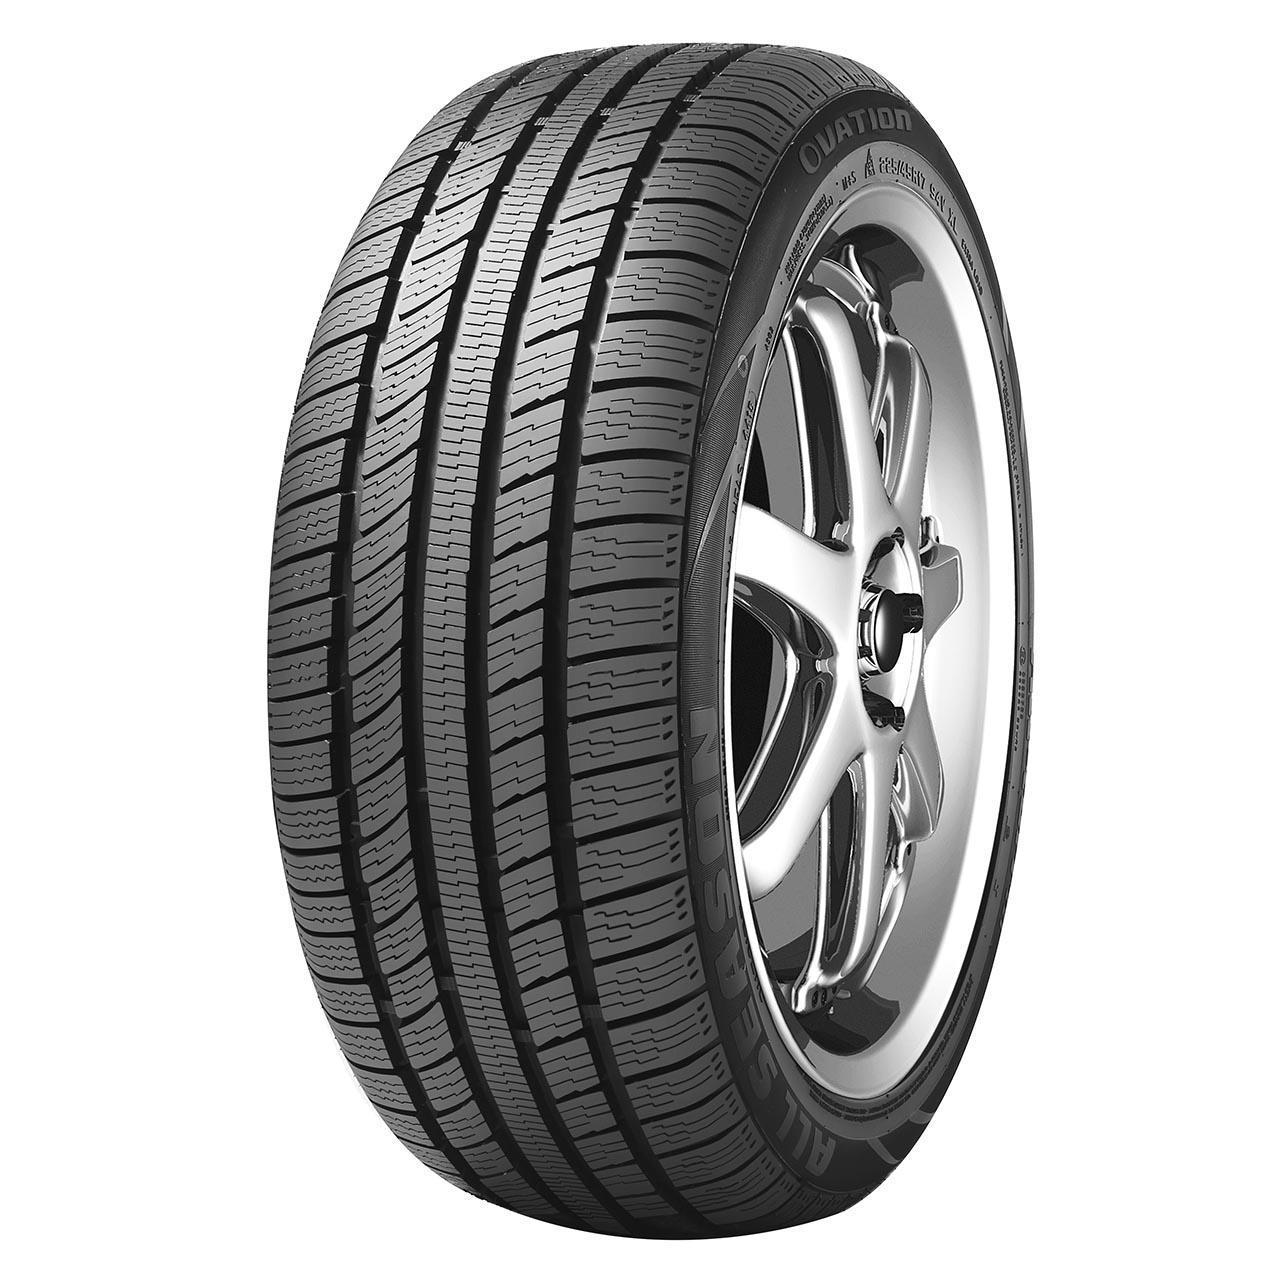 OVATION VI-782AS 155/80 R13 79T  M+S